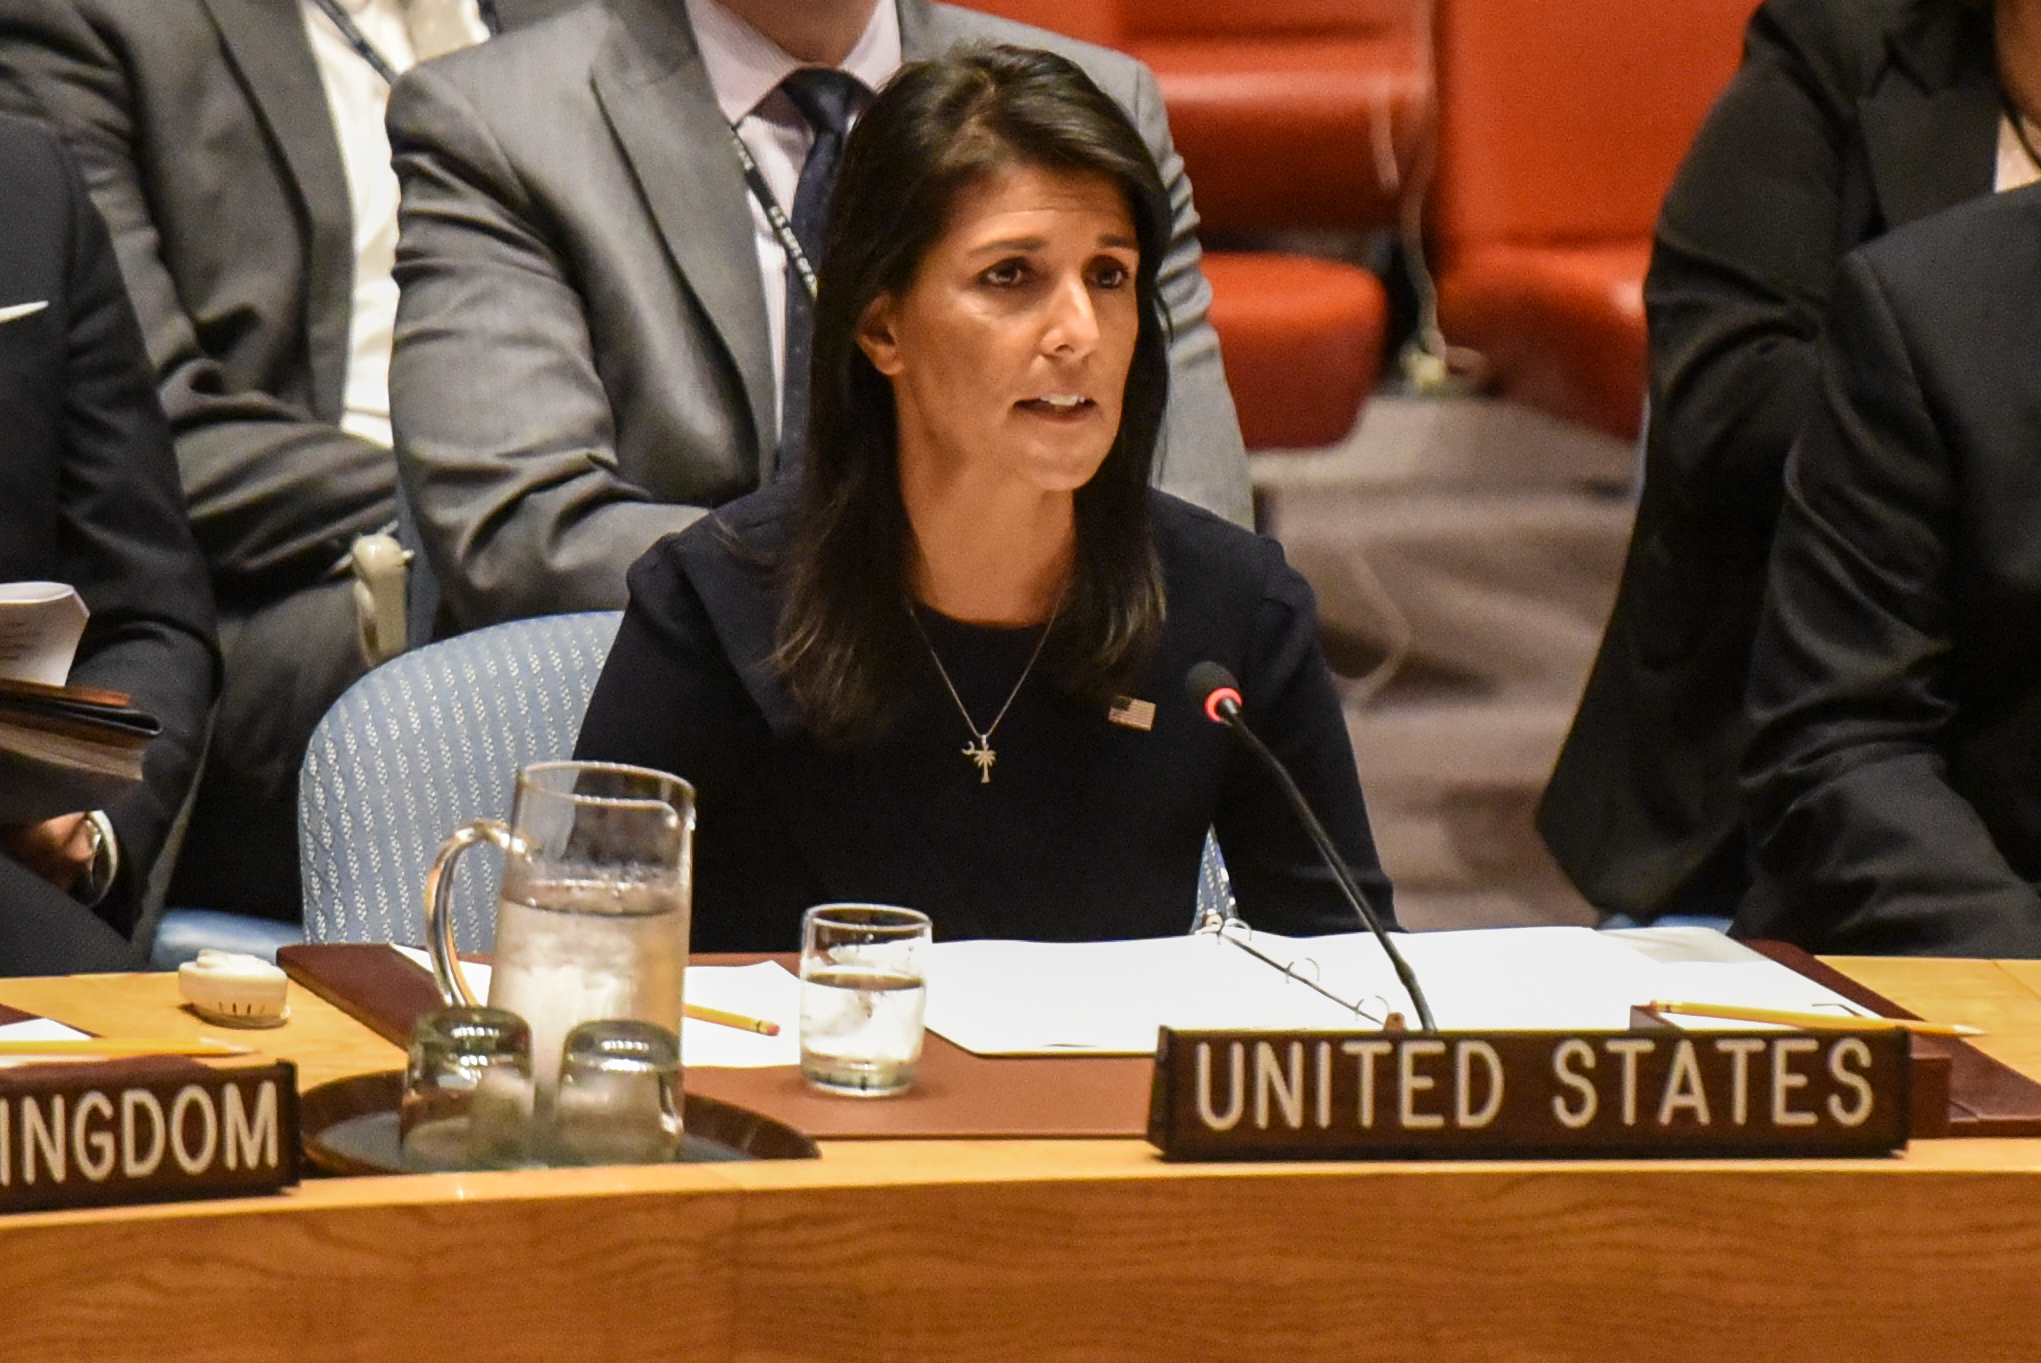 Ambassador to the UN, Nikki Haley, delivers remarks during a United Nations Security Council meeting on North Korea on Sept. 4, 2017 in New York City.